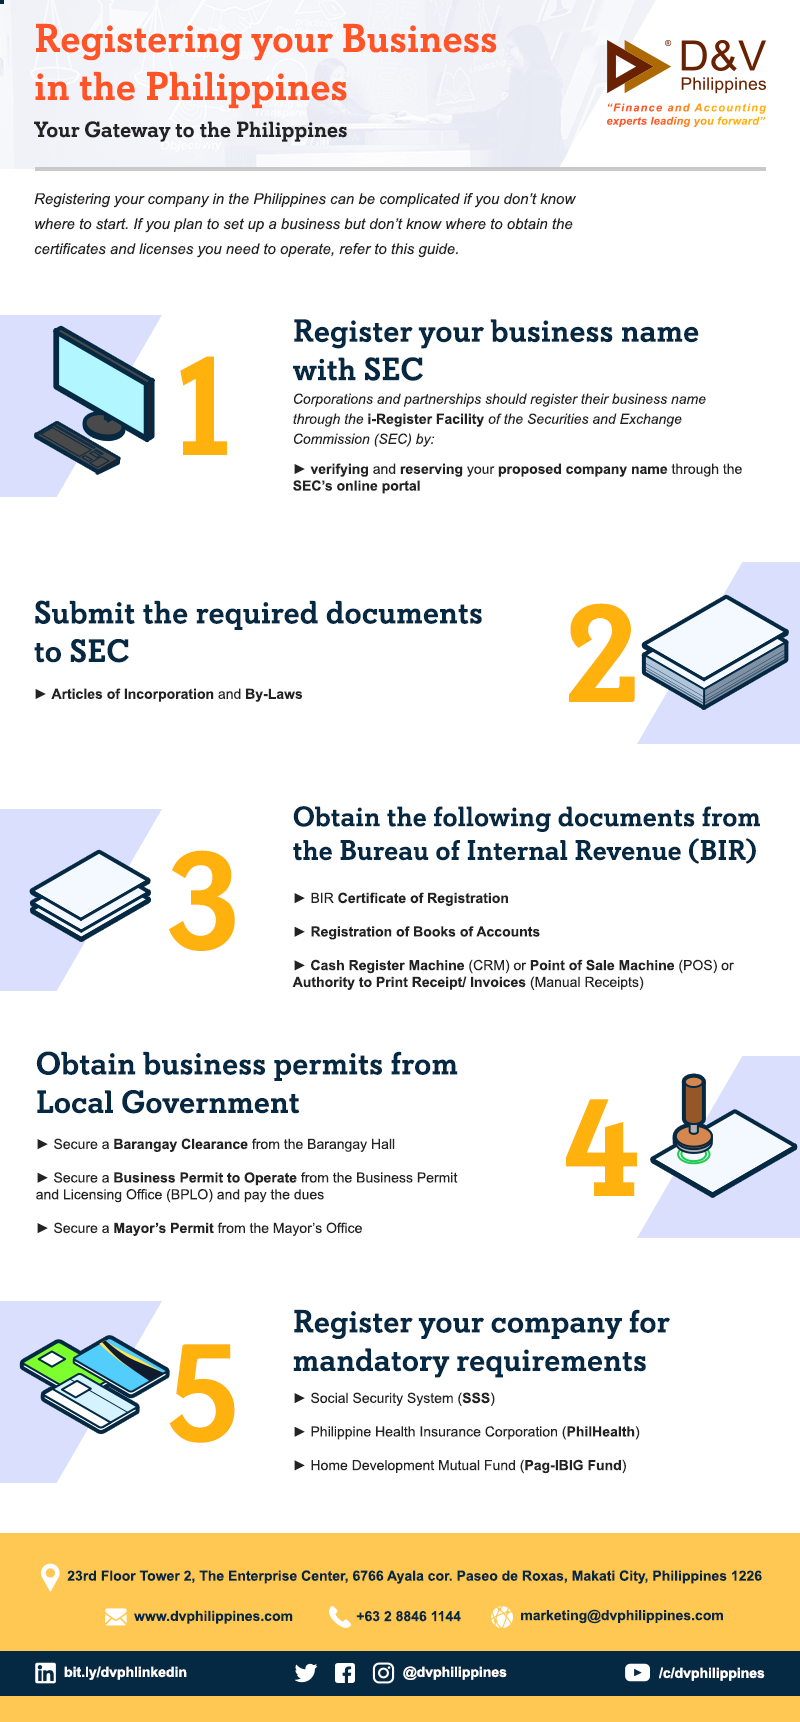 Registering your business in the Philippines